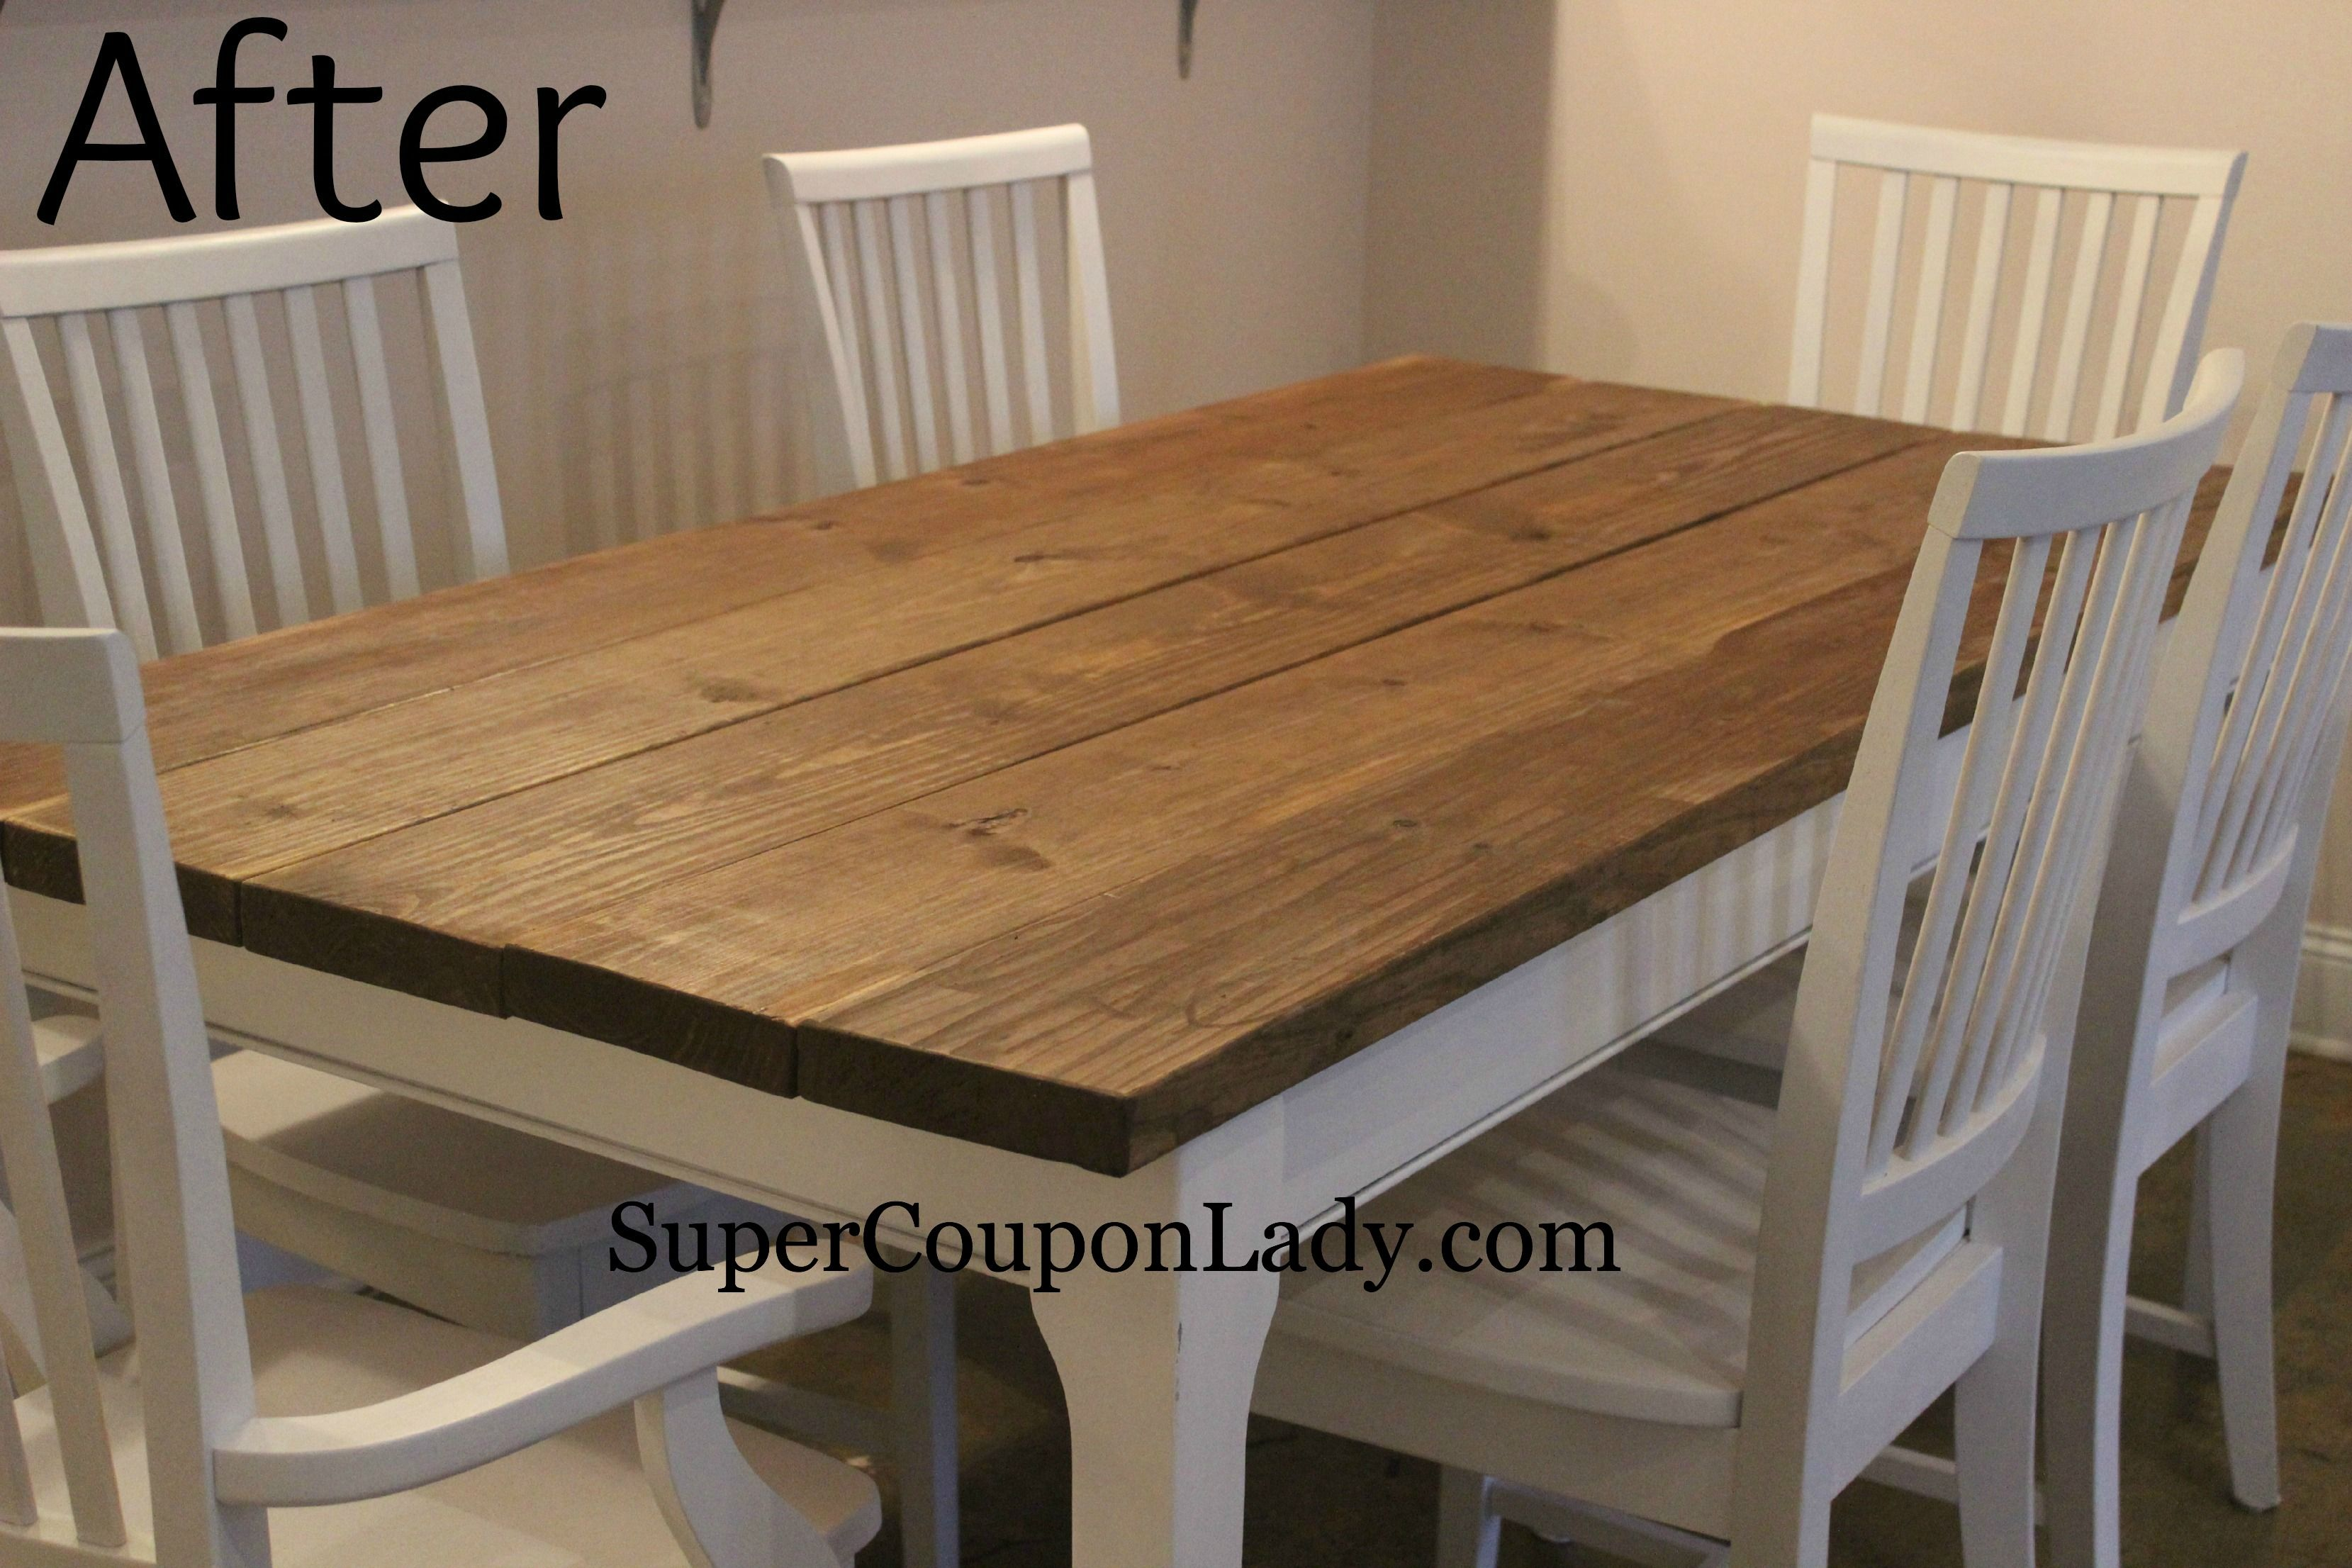 Refinished black white oak table and chairs How to Refinish and Repair an  Oak Dining Room Table and Chairs   Fun Stuff   DIY Ideas   Pinterest   Oak  dining. Refinished black white oak table and chairs How to Refinish and